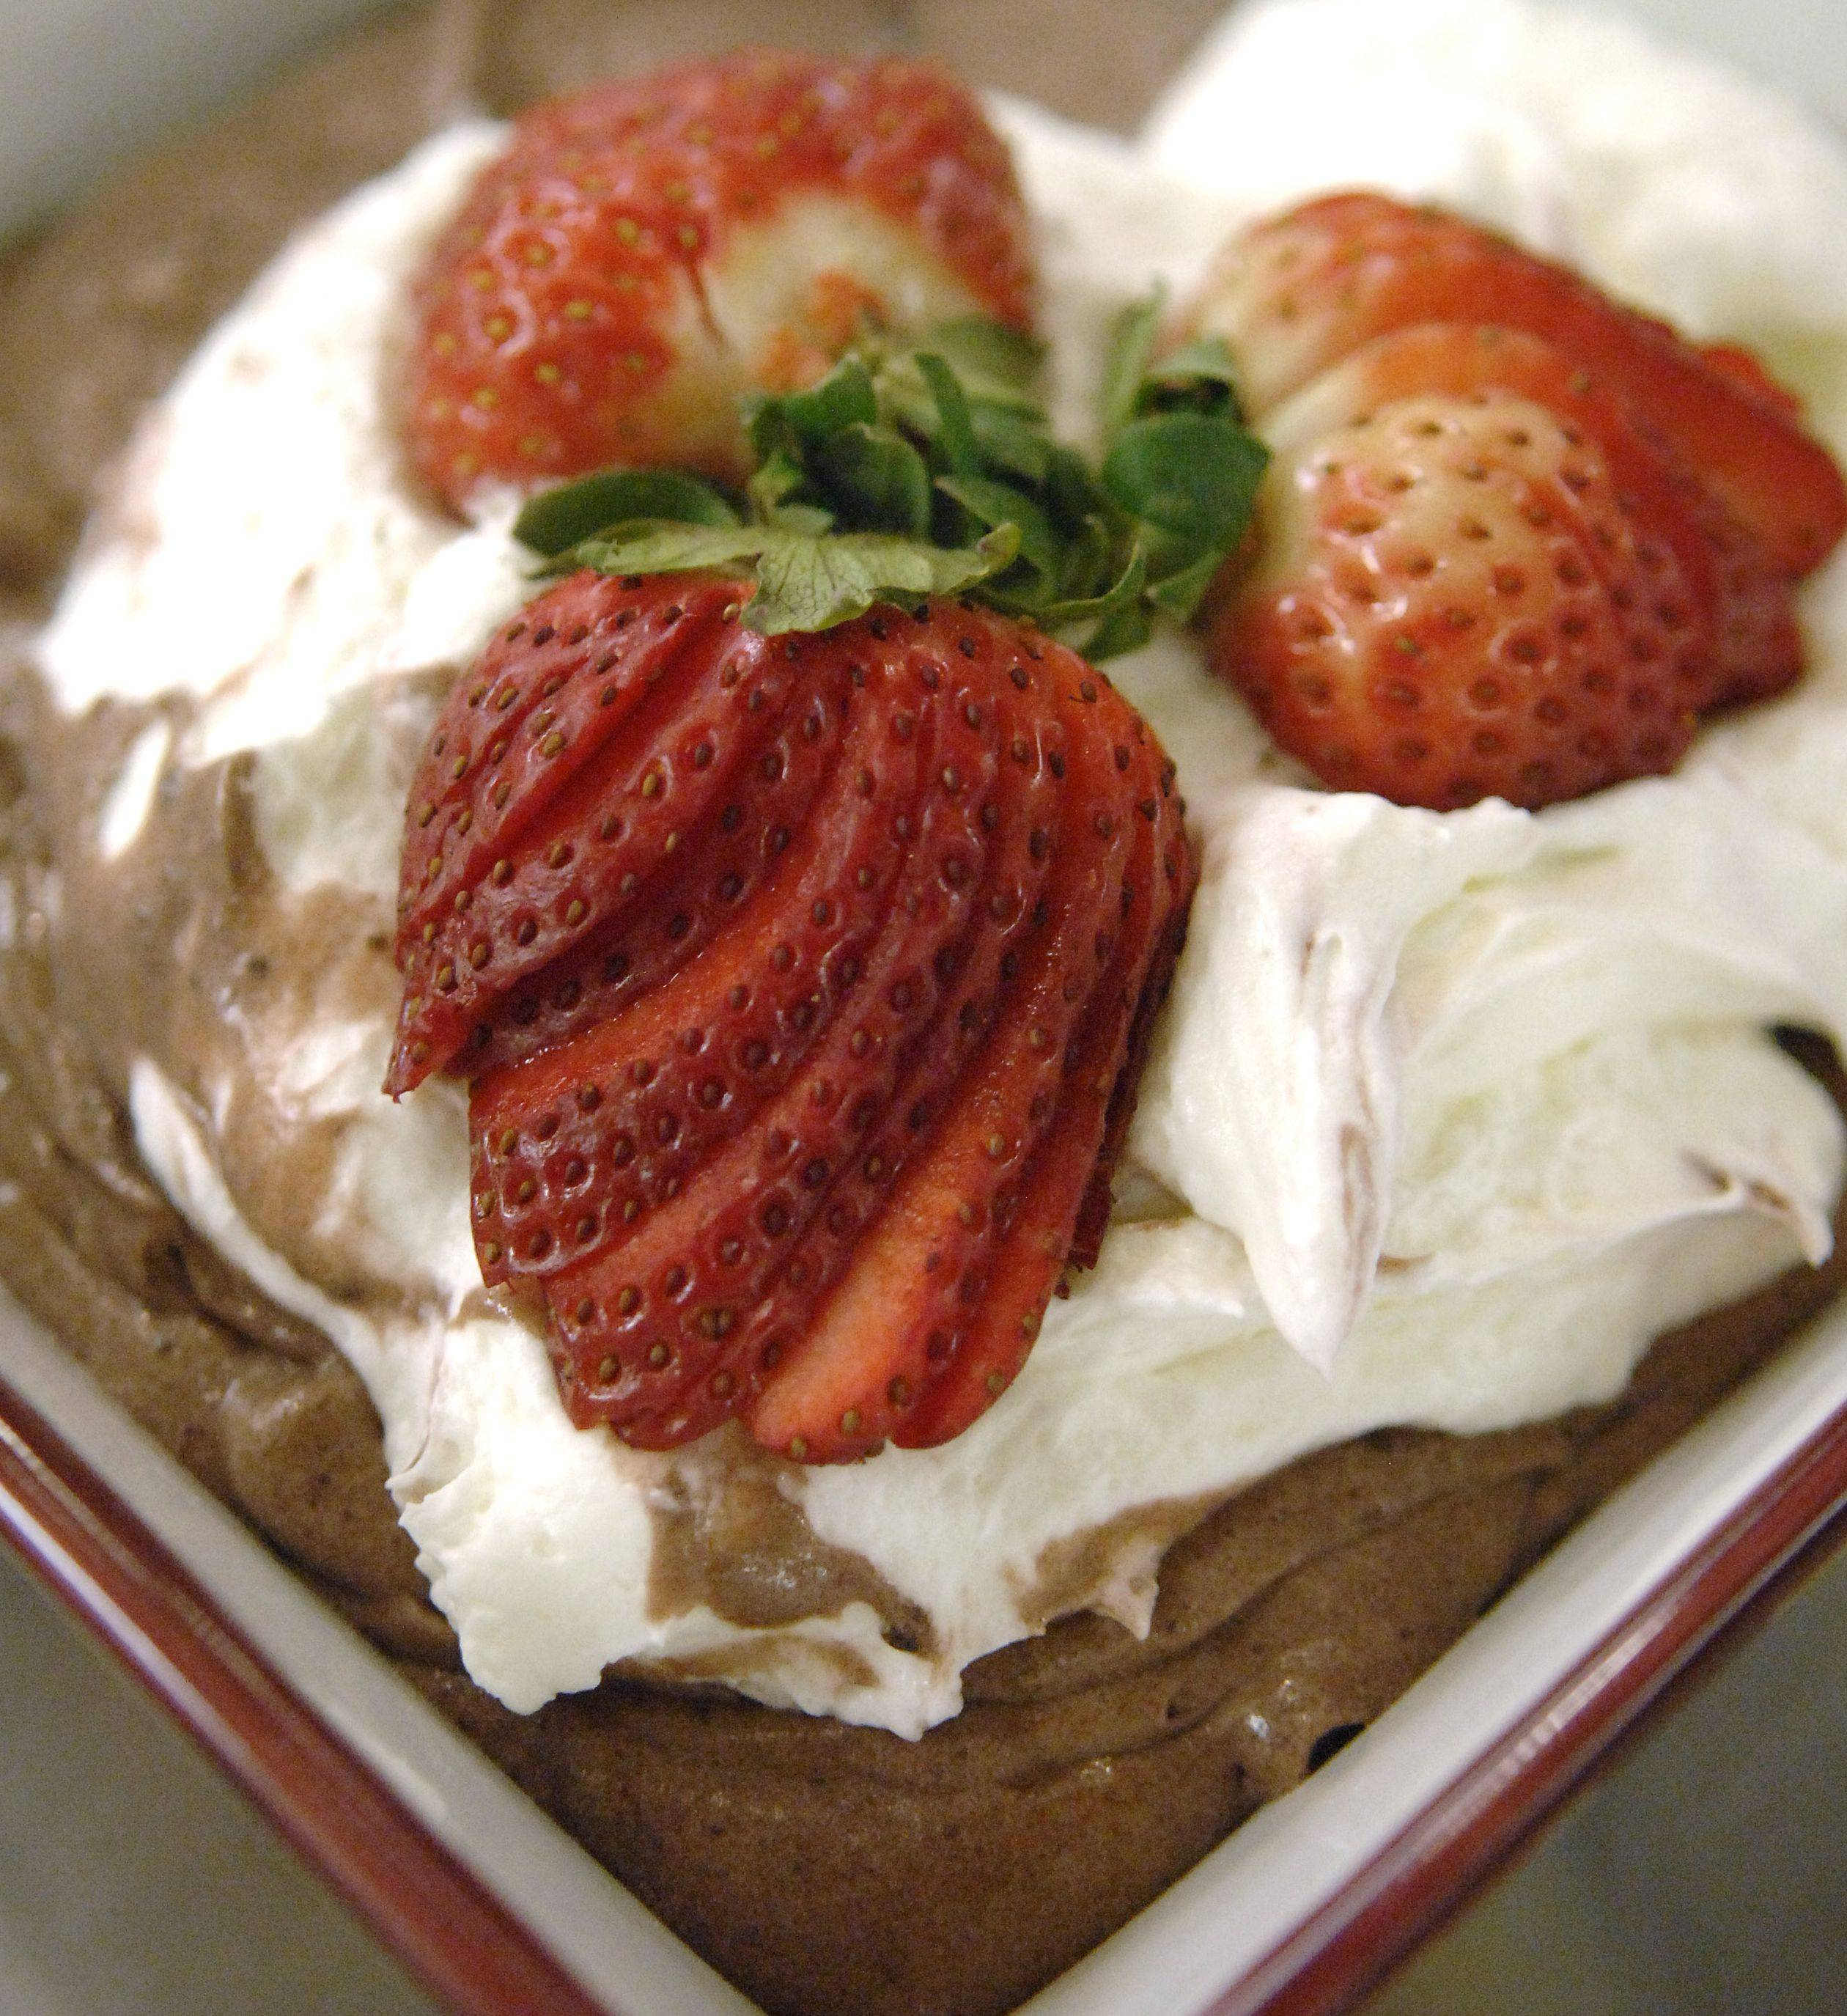 This chocolate mousse by chef Jen Bucko Lamplough of Batavia is low in fat, sugar and calories.